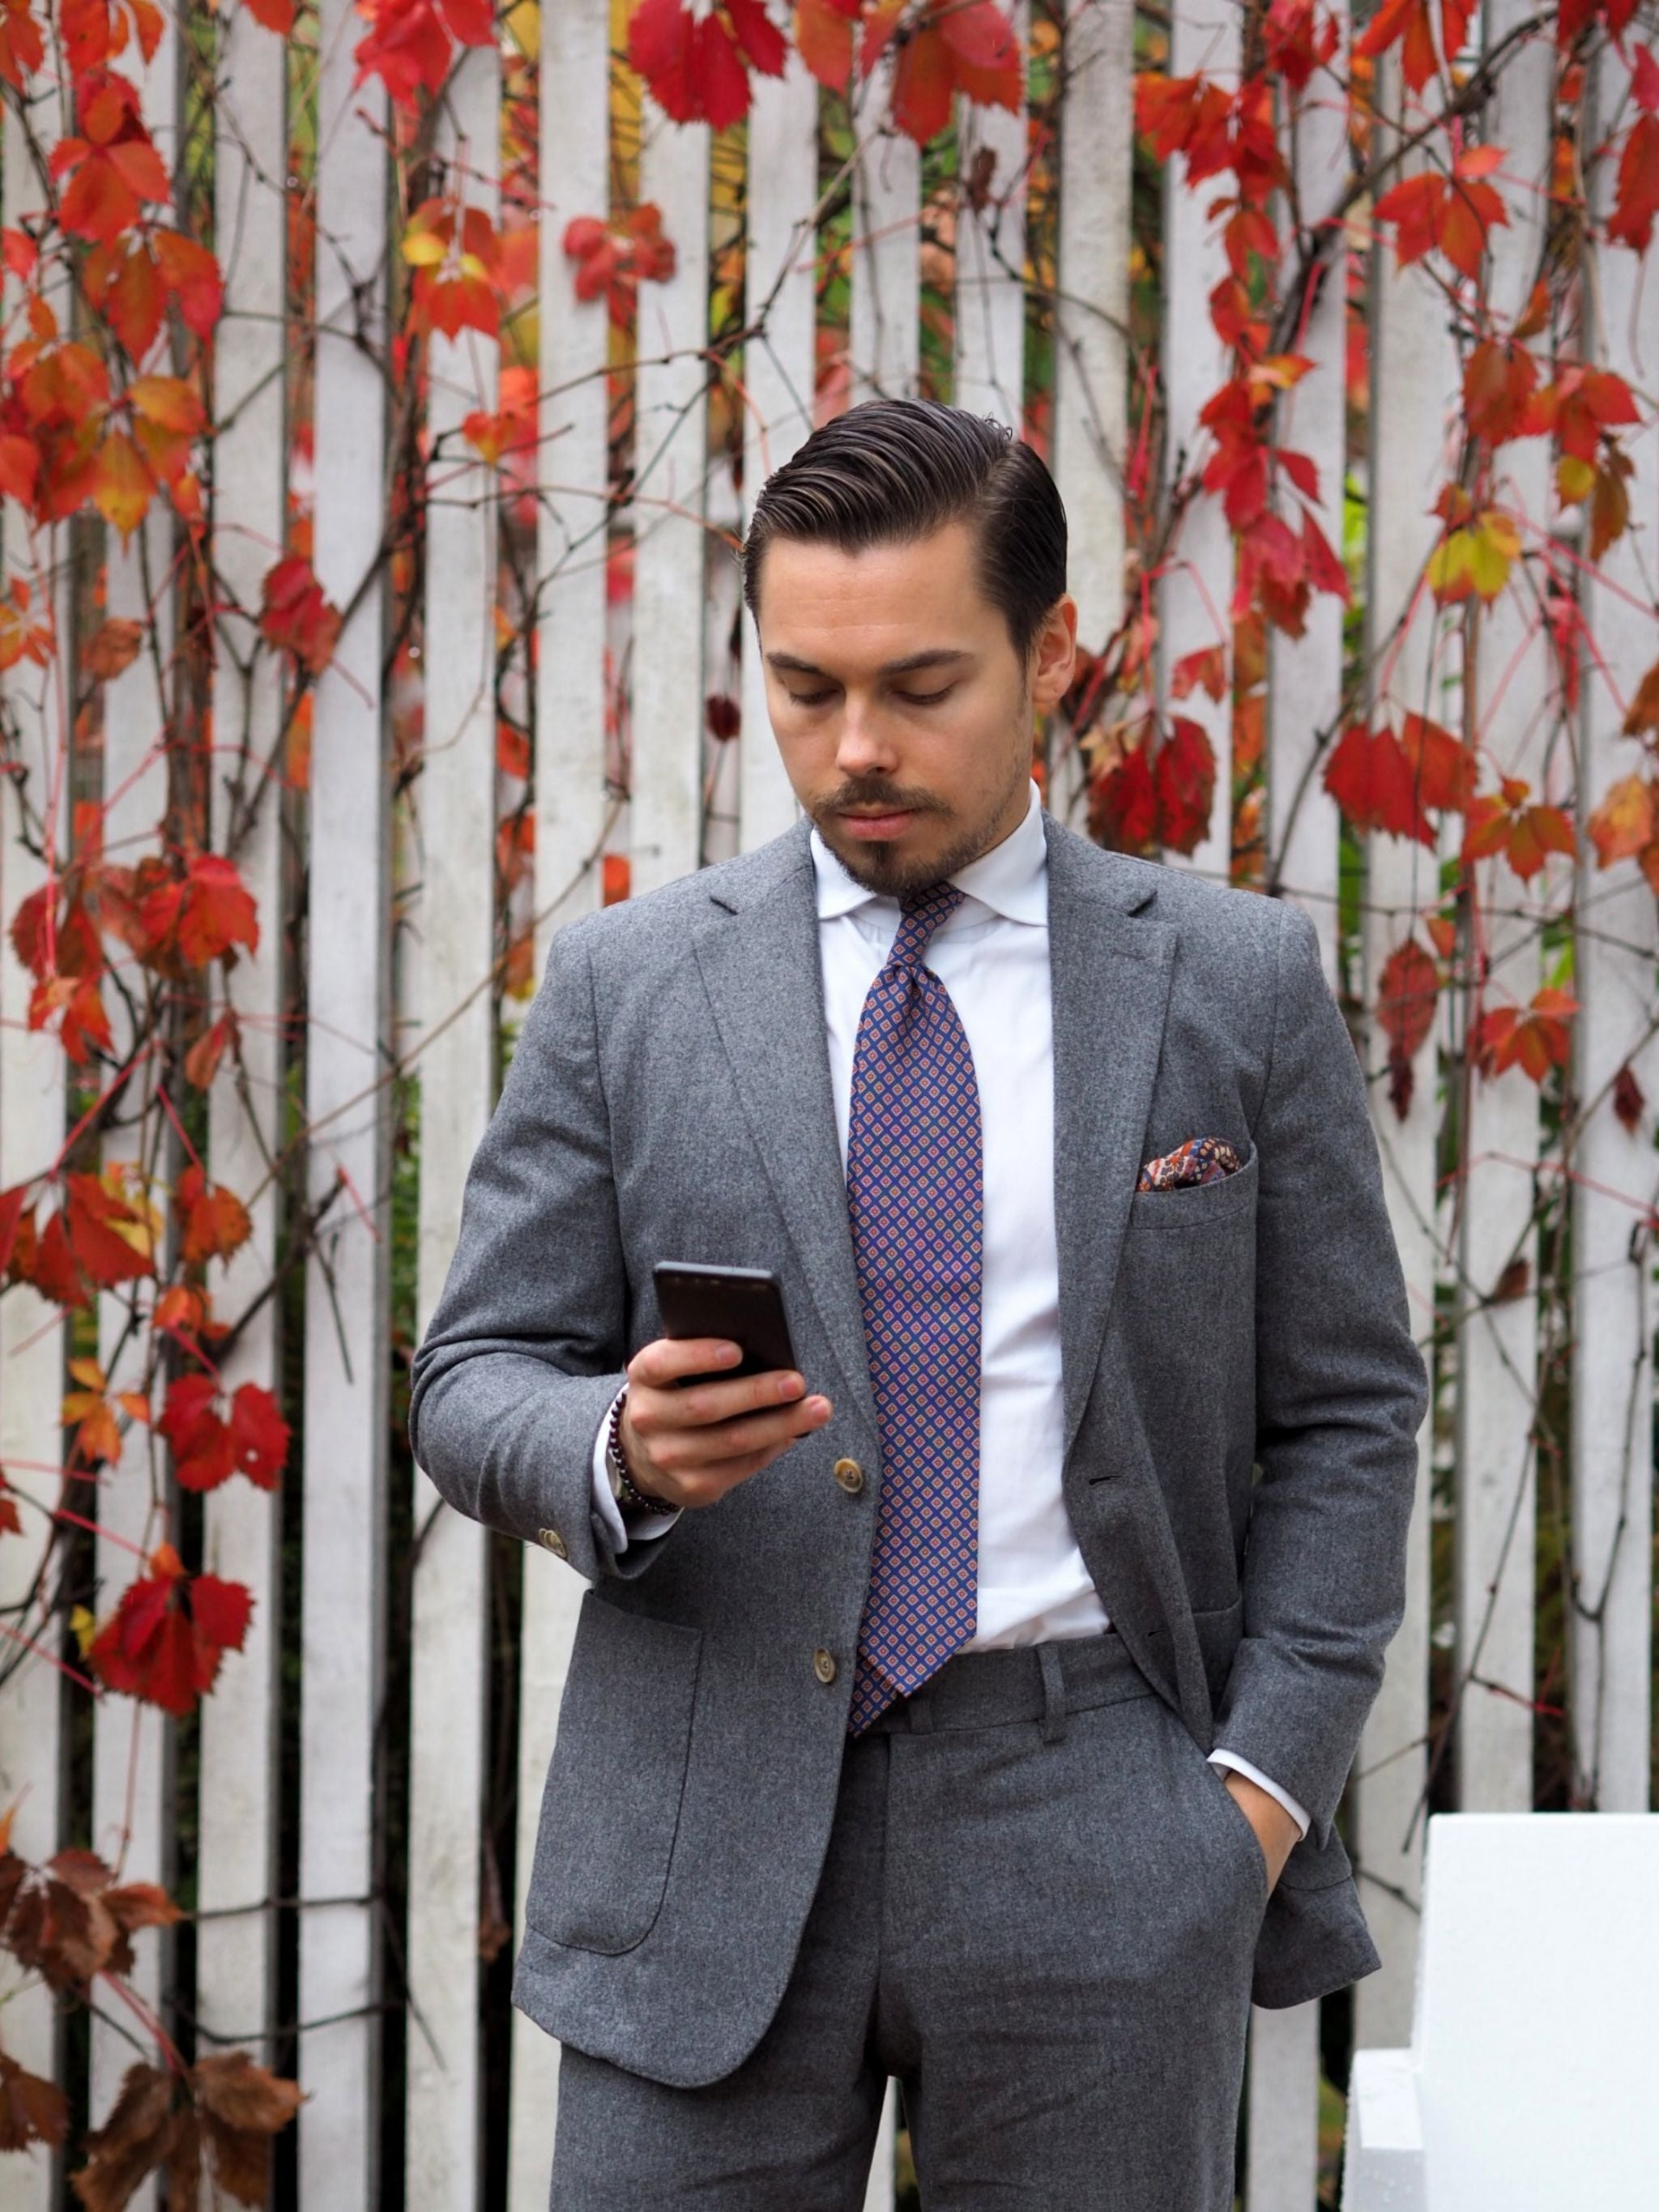 Autumnal business casual outfits - the gray flannel suit